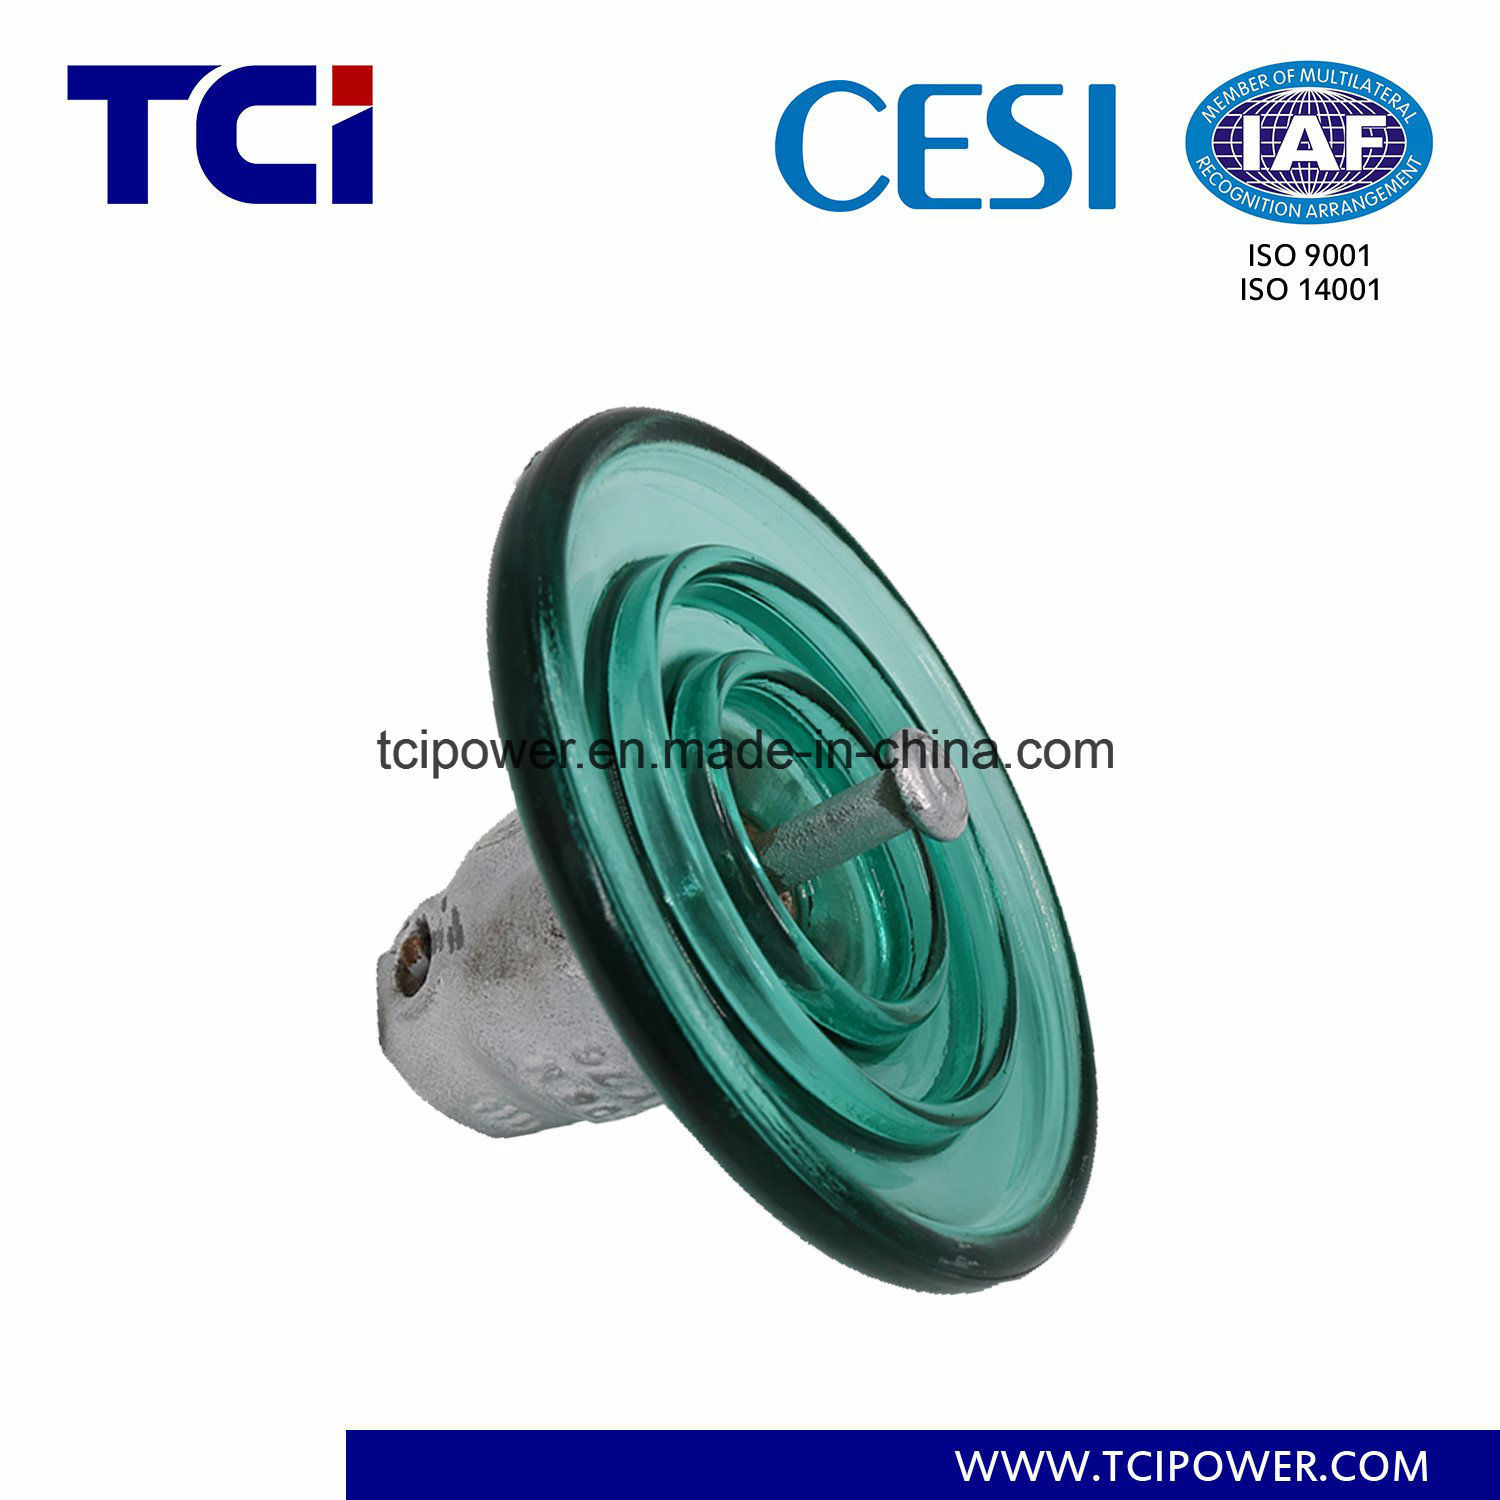 Wholesale Glass Insulators, China Wholesale Glass Insulators ...